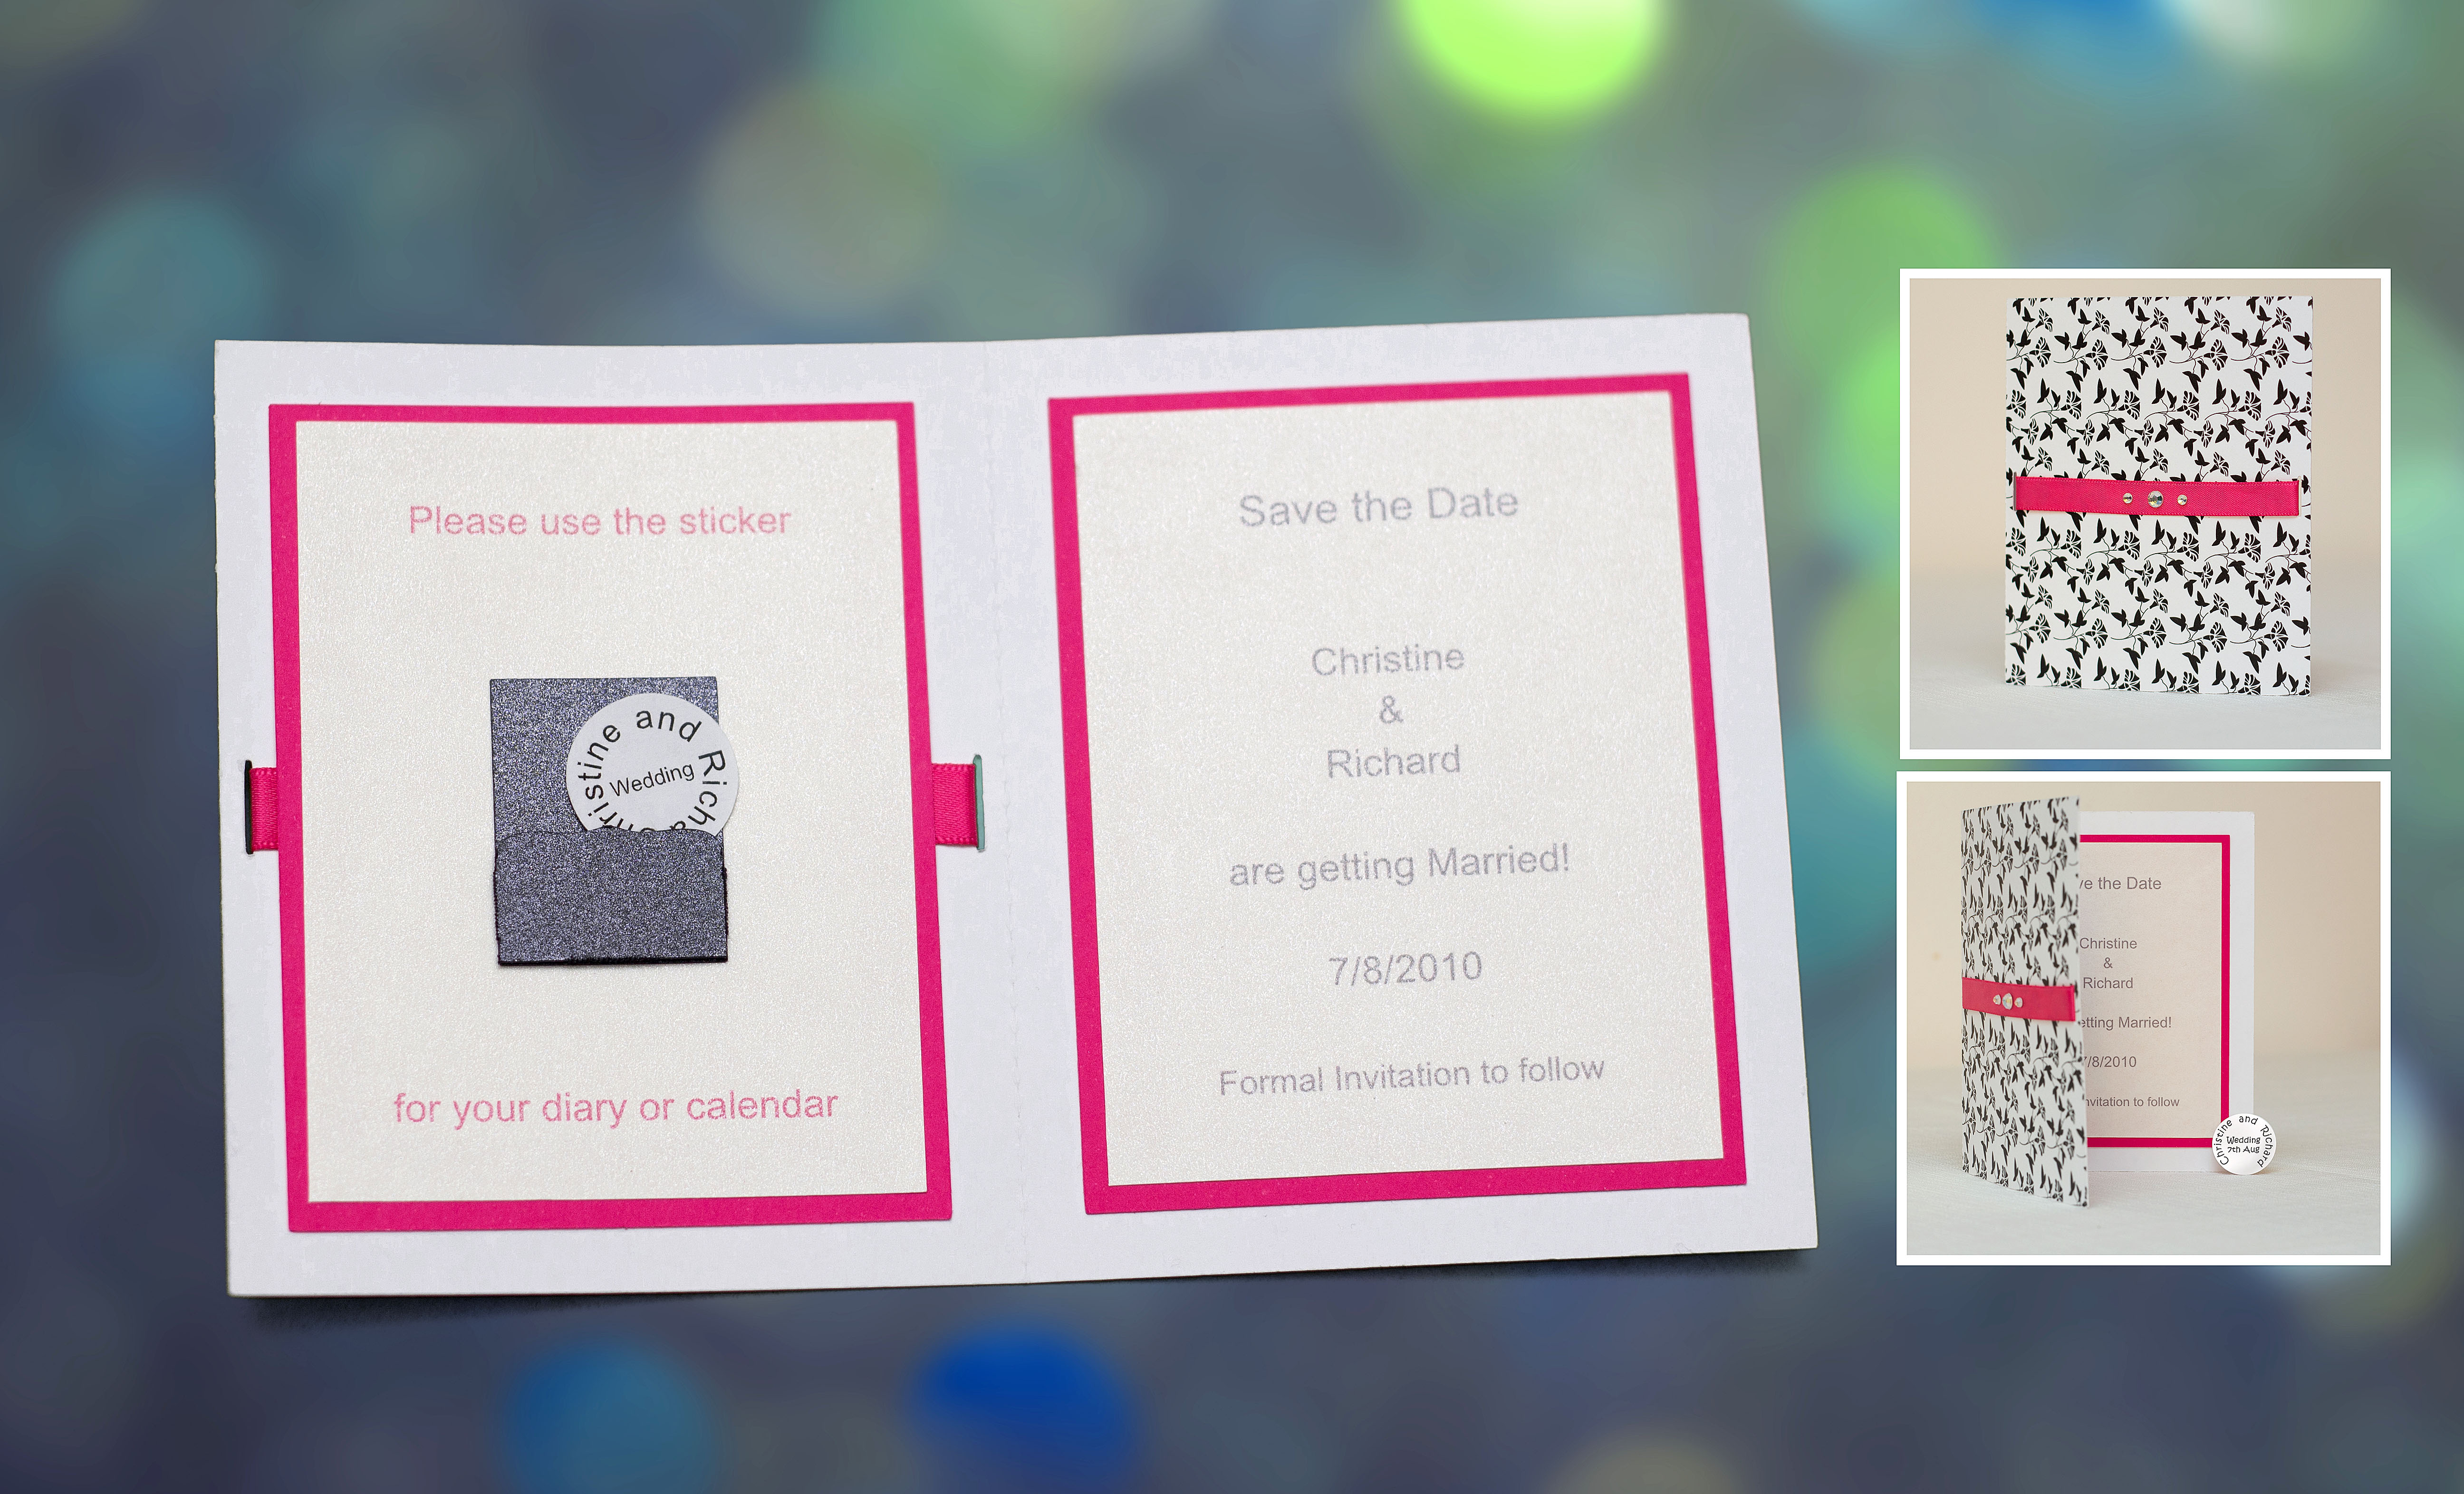 Diary Sticker Save the Date